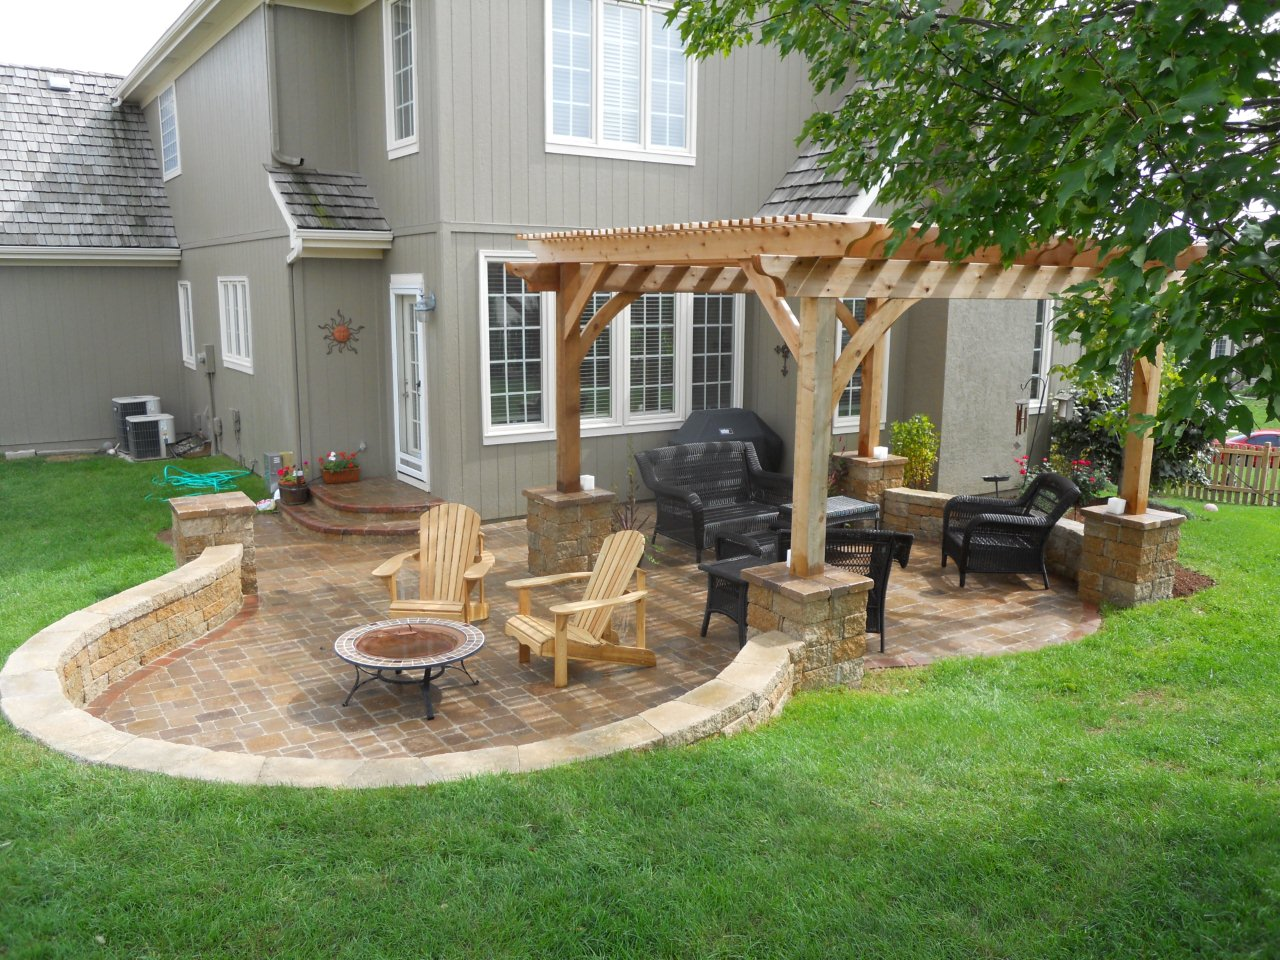 Backyard Design Outdoor Patio Ideas 1280 x 960